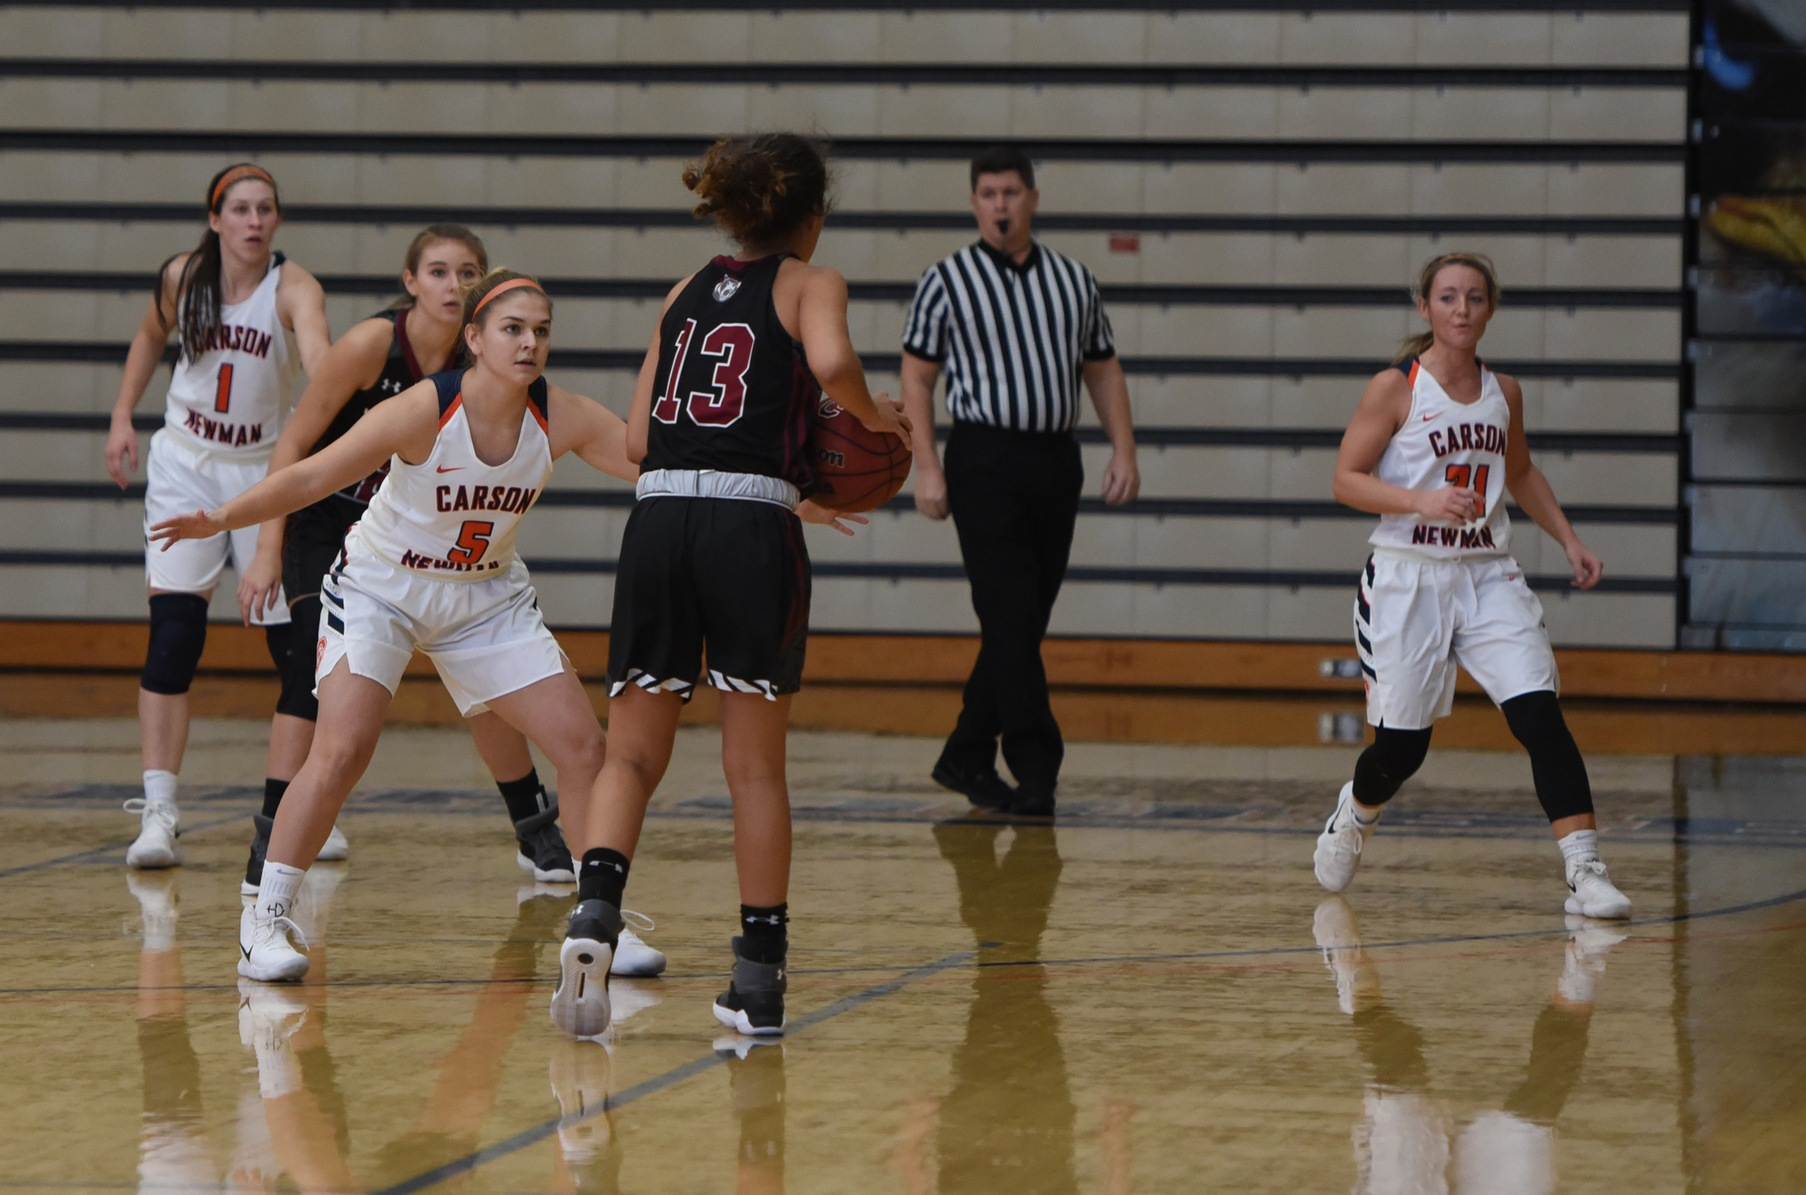 Bears brace for #5 Lady Eagles in Saturday SAC showdown